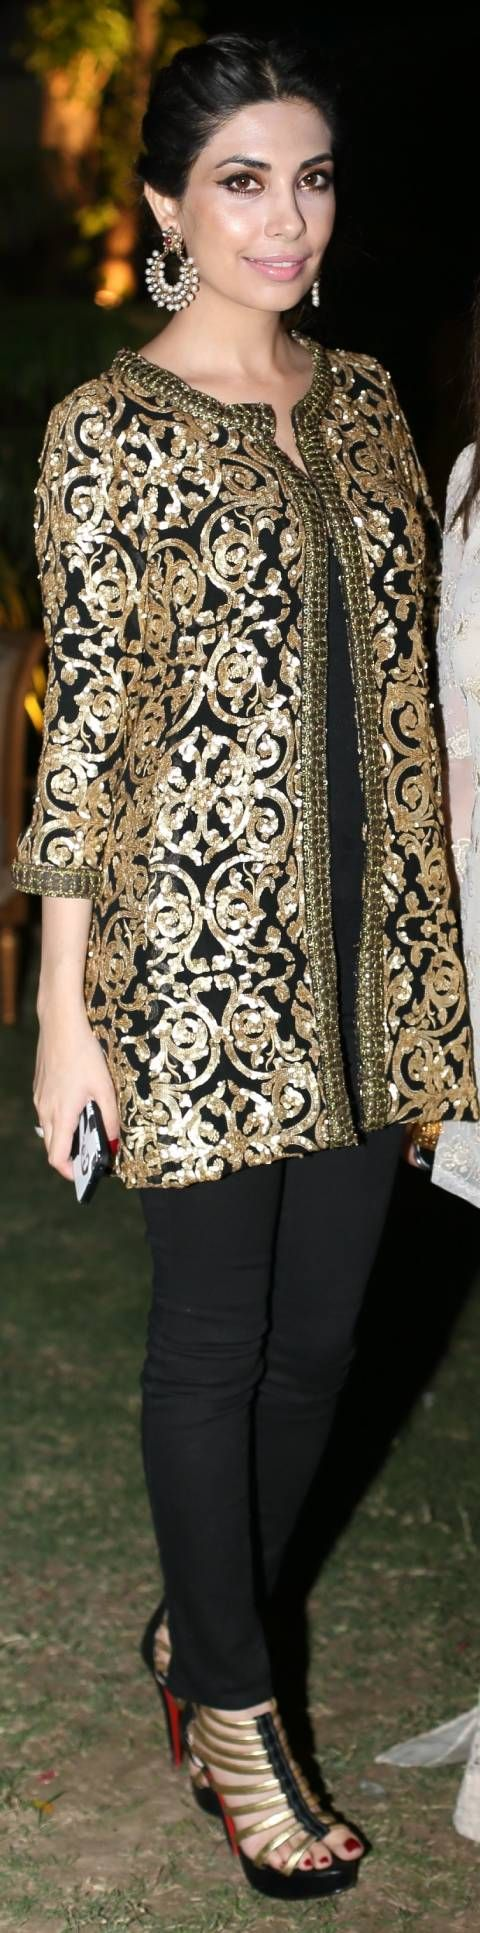 LOOK OF THE DAY: Maheen Ghani Taseer ...golden